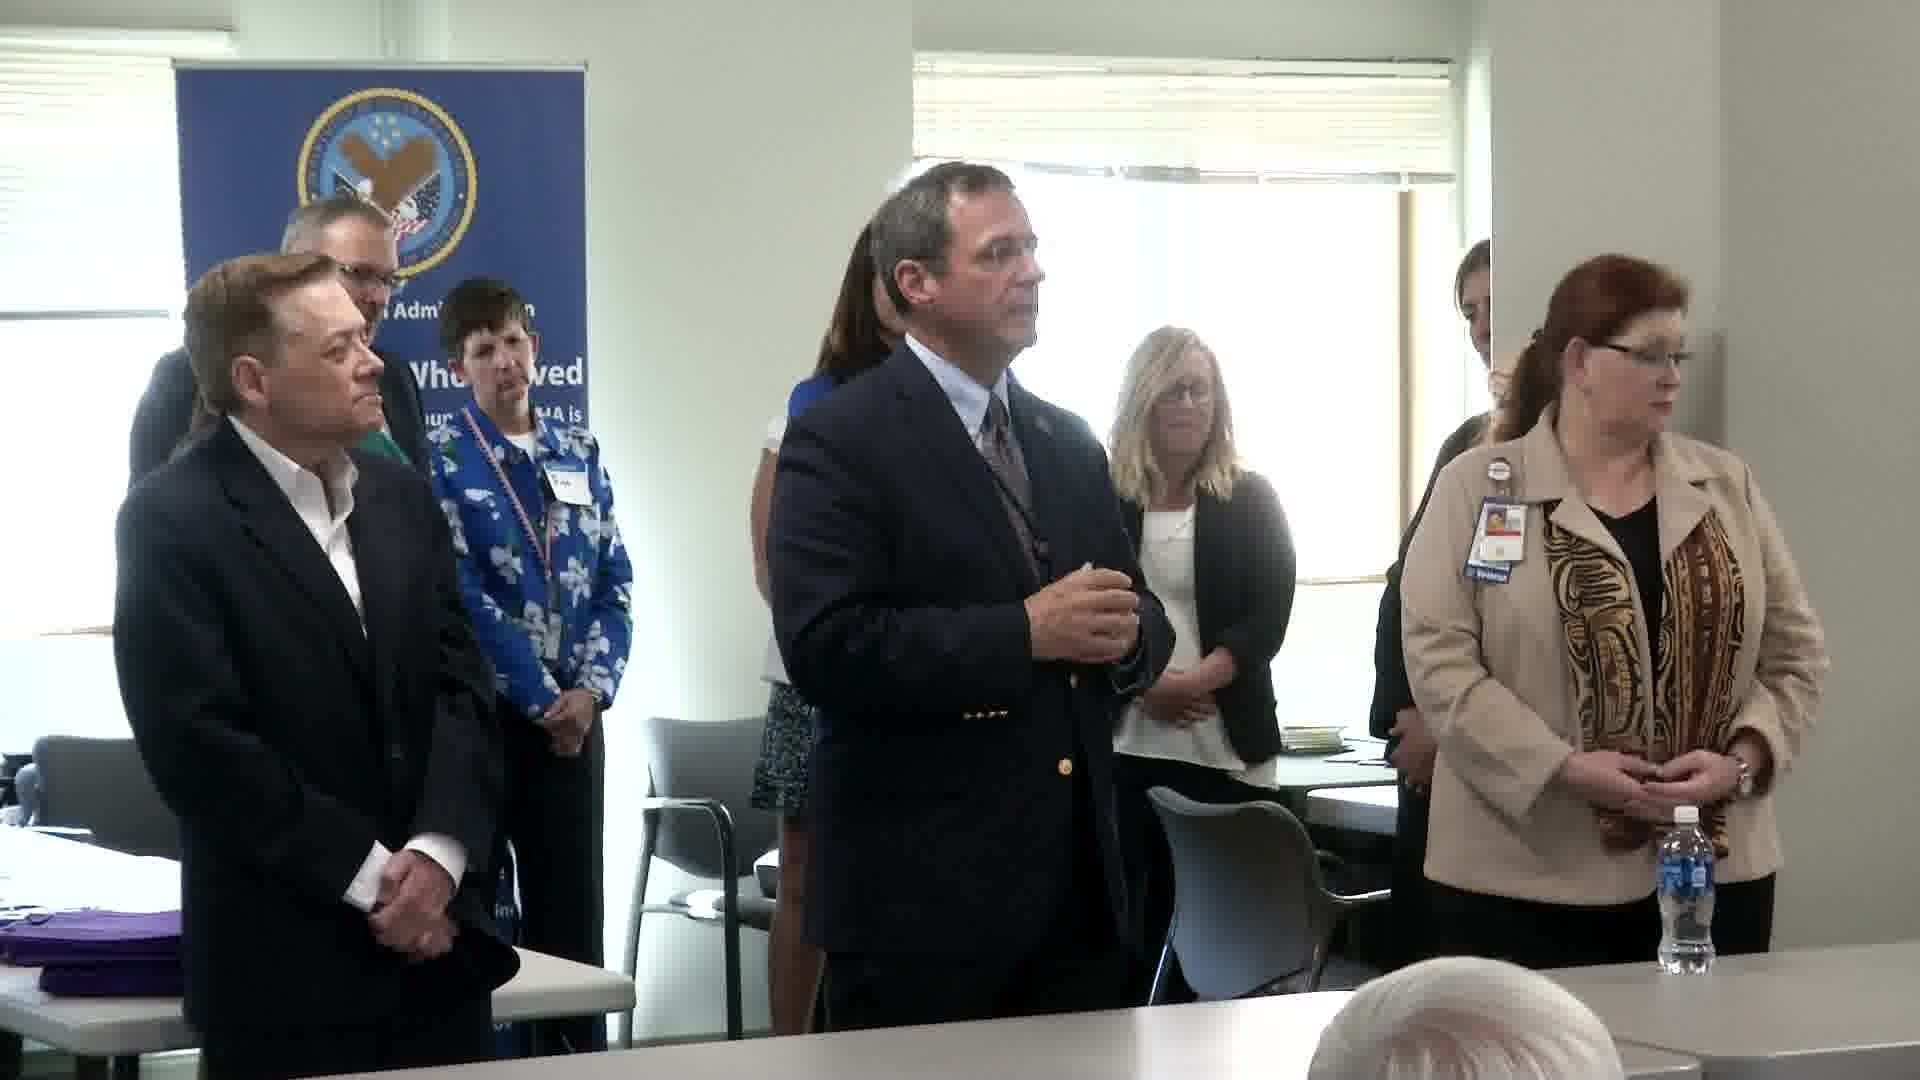 Several of the people in attendance asked questions about the future of the Veterans Choice Program. (MTN News photo)